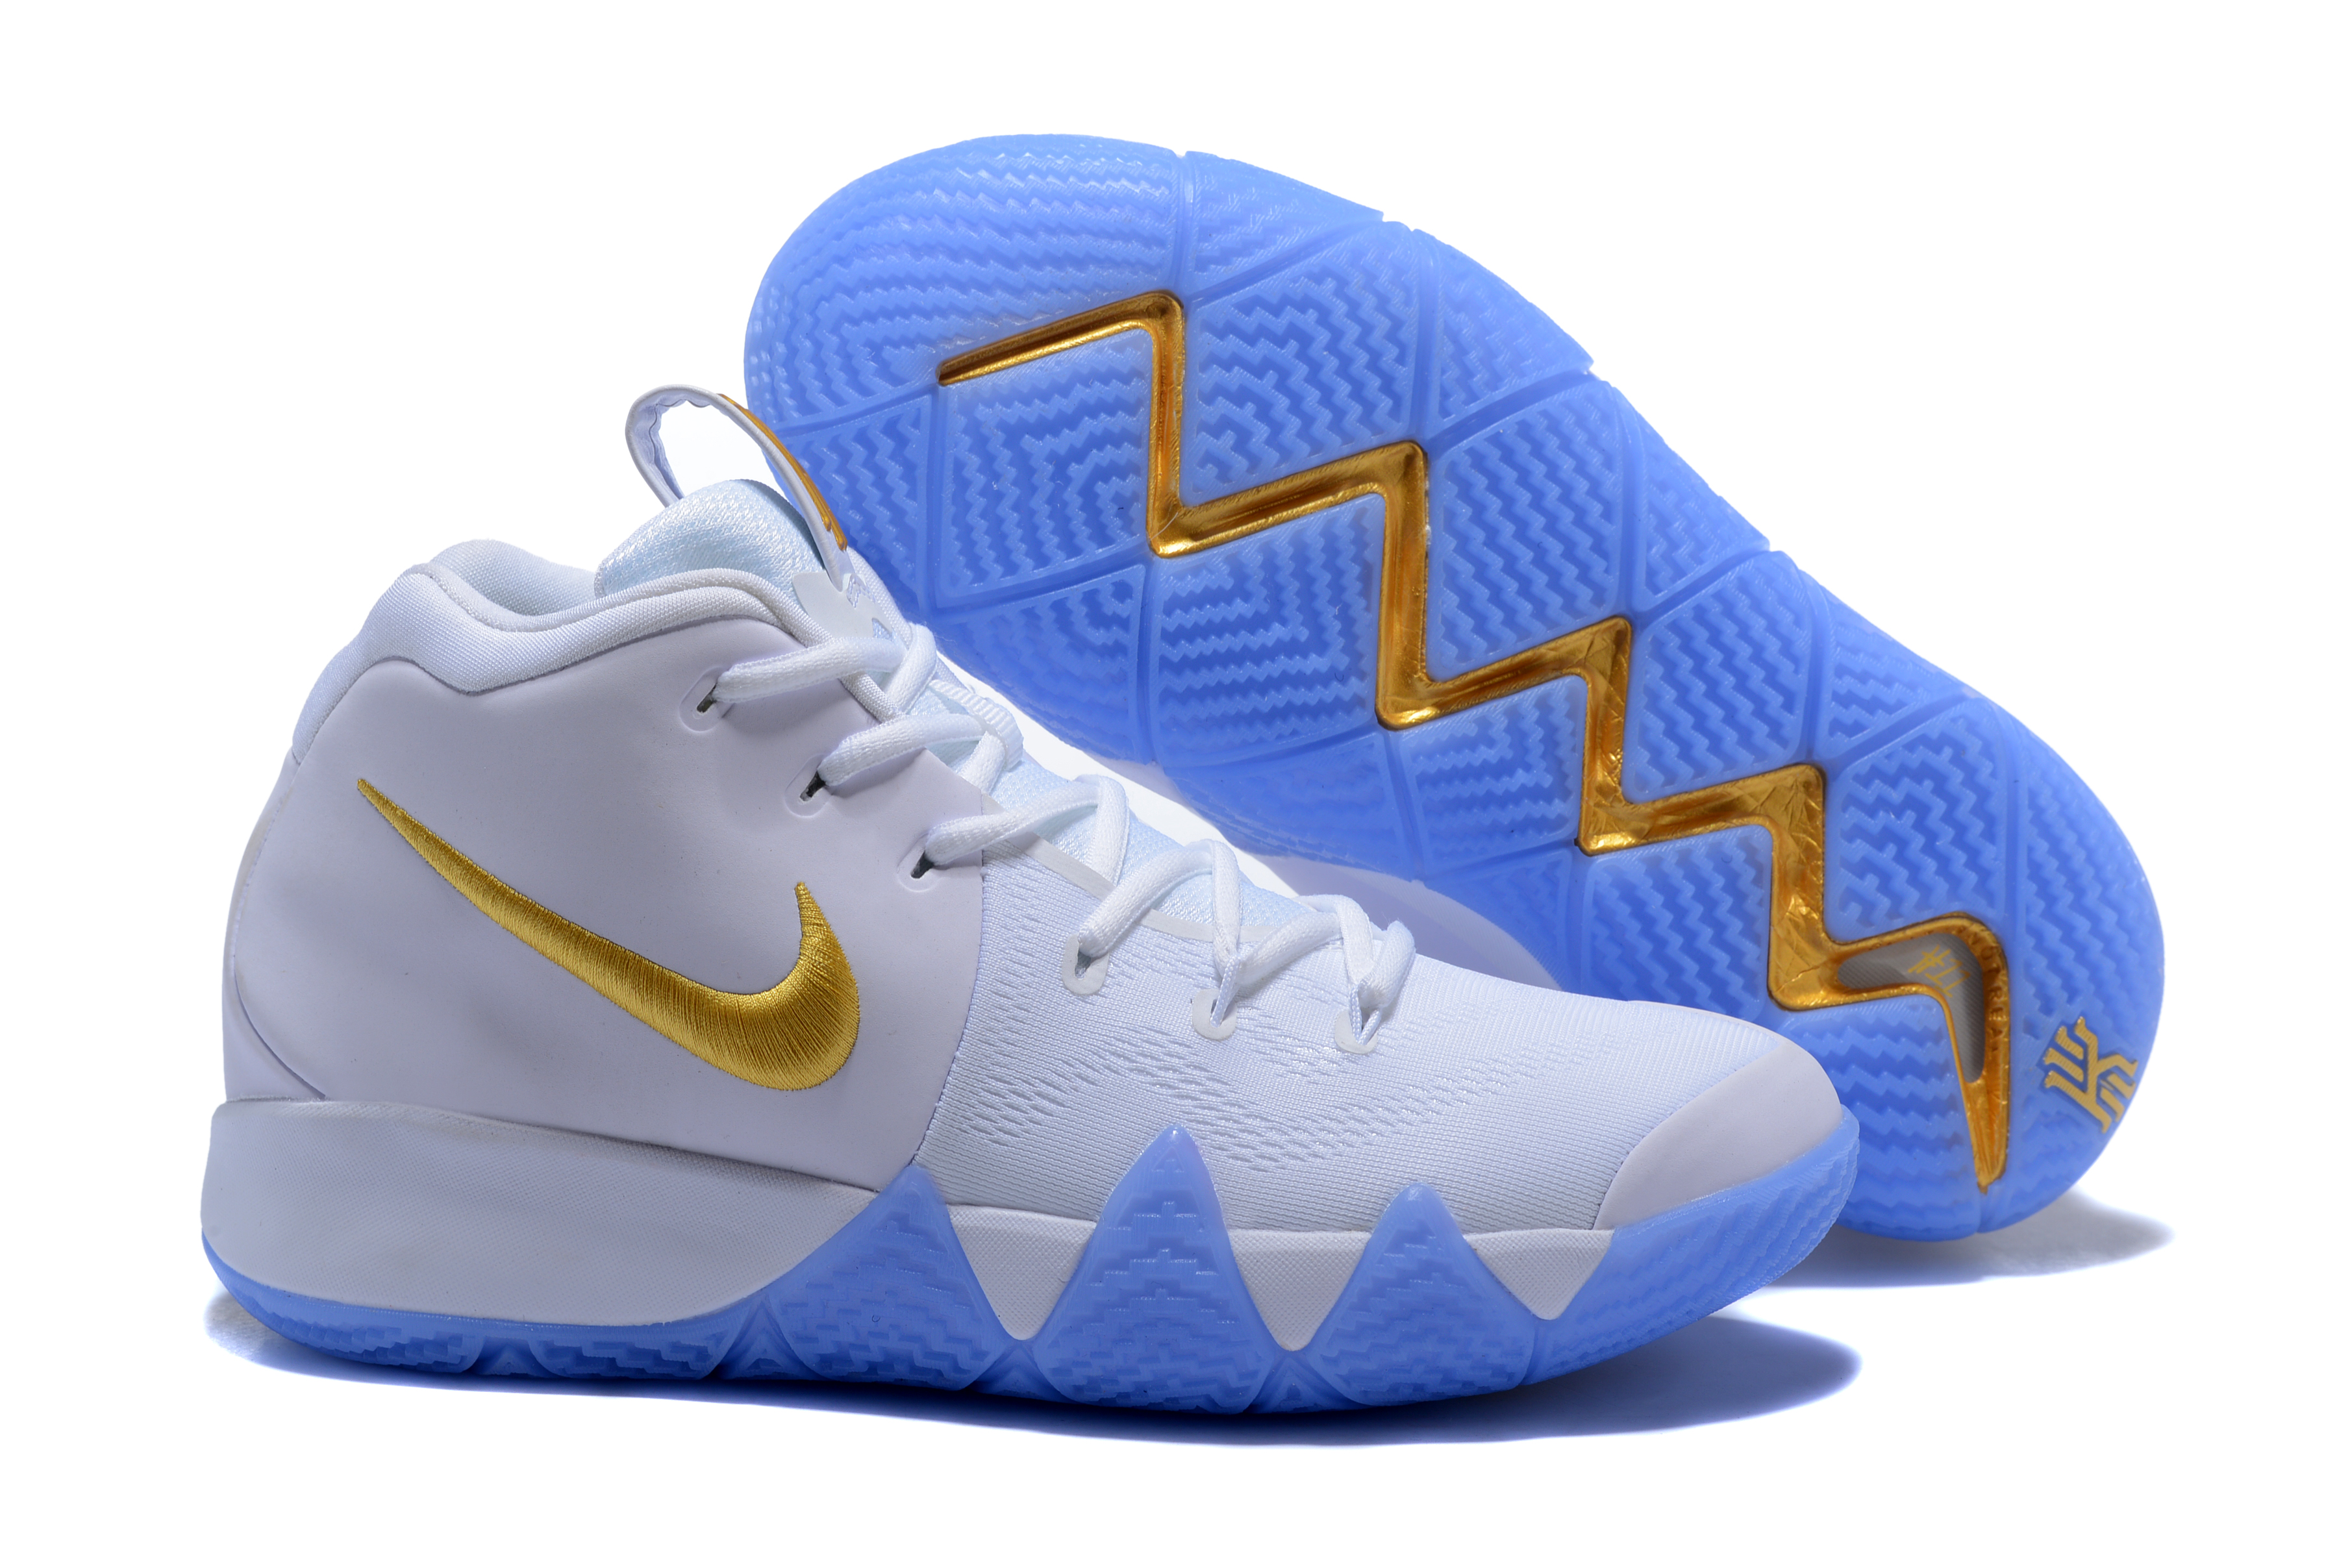 Nike Kyrie 4 WHite Gloden Shoes